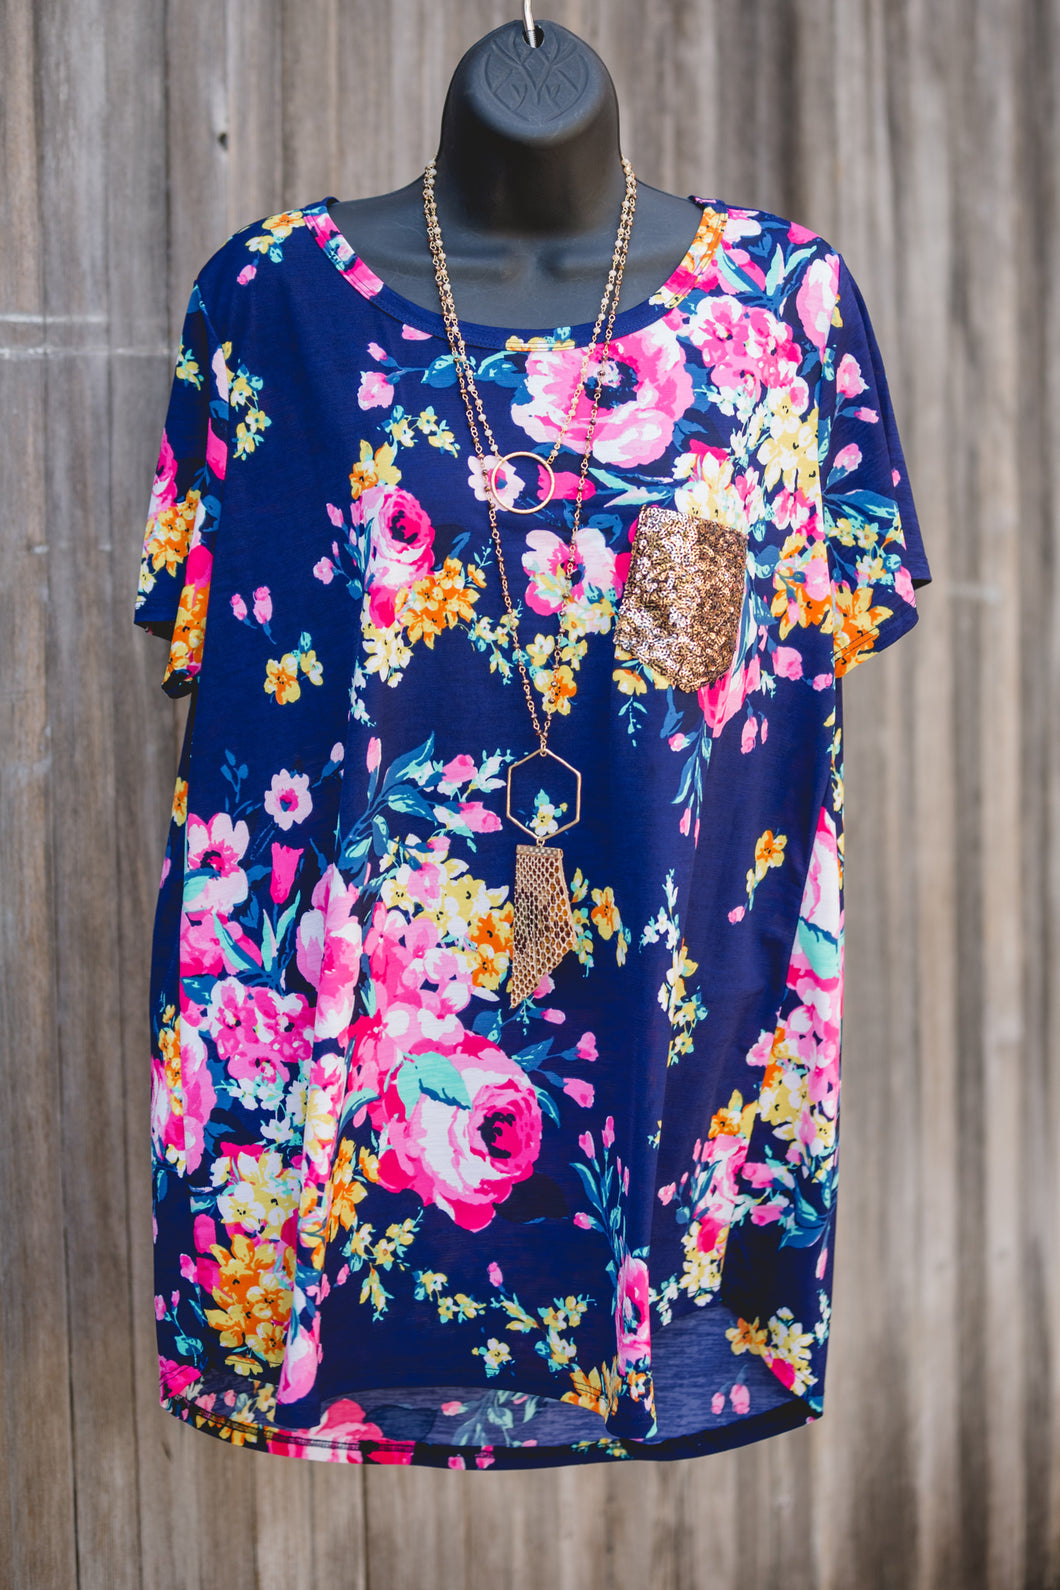 Floral Glitter Pocket Top